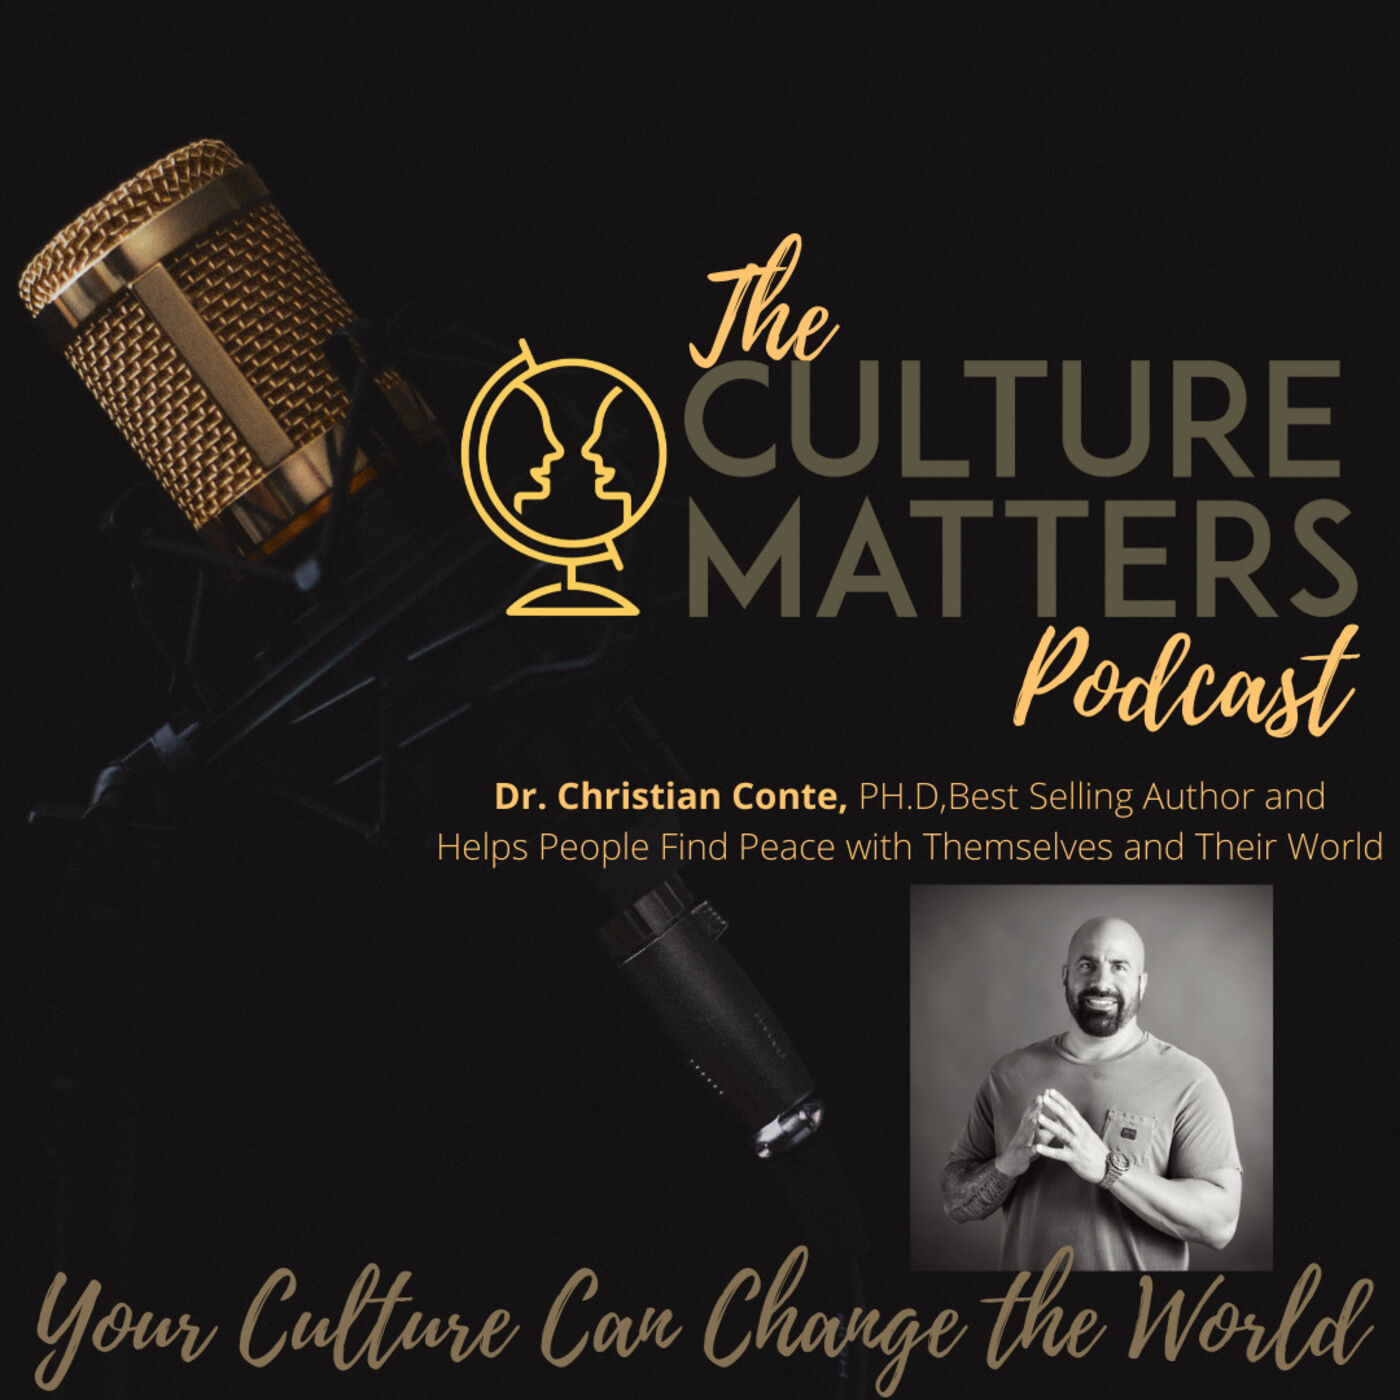 Season 7, Episode 83: Guest: Dr. Christian Conte: No Matter What You Do, You Play a Role